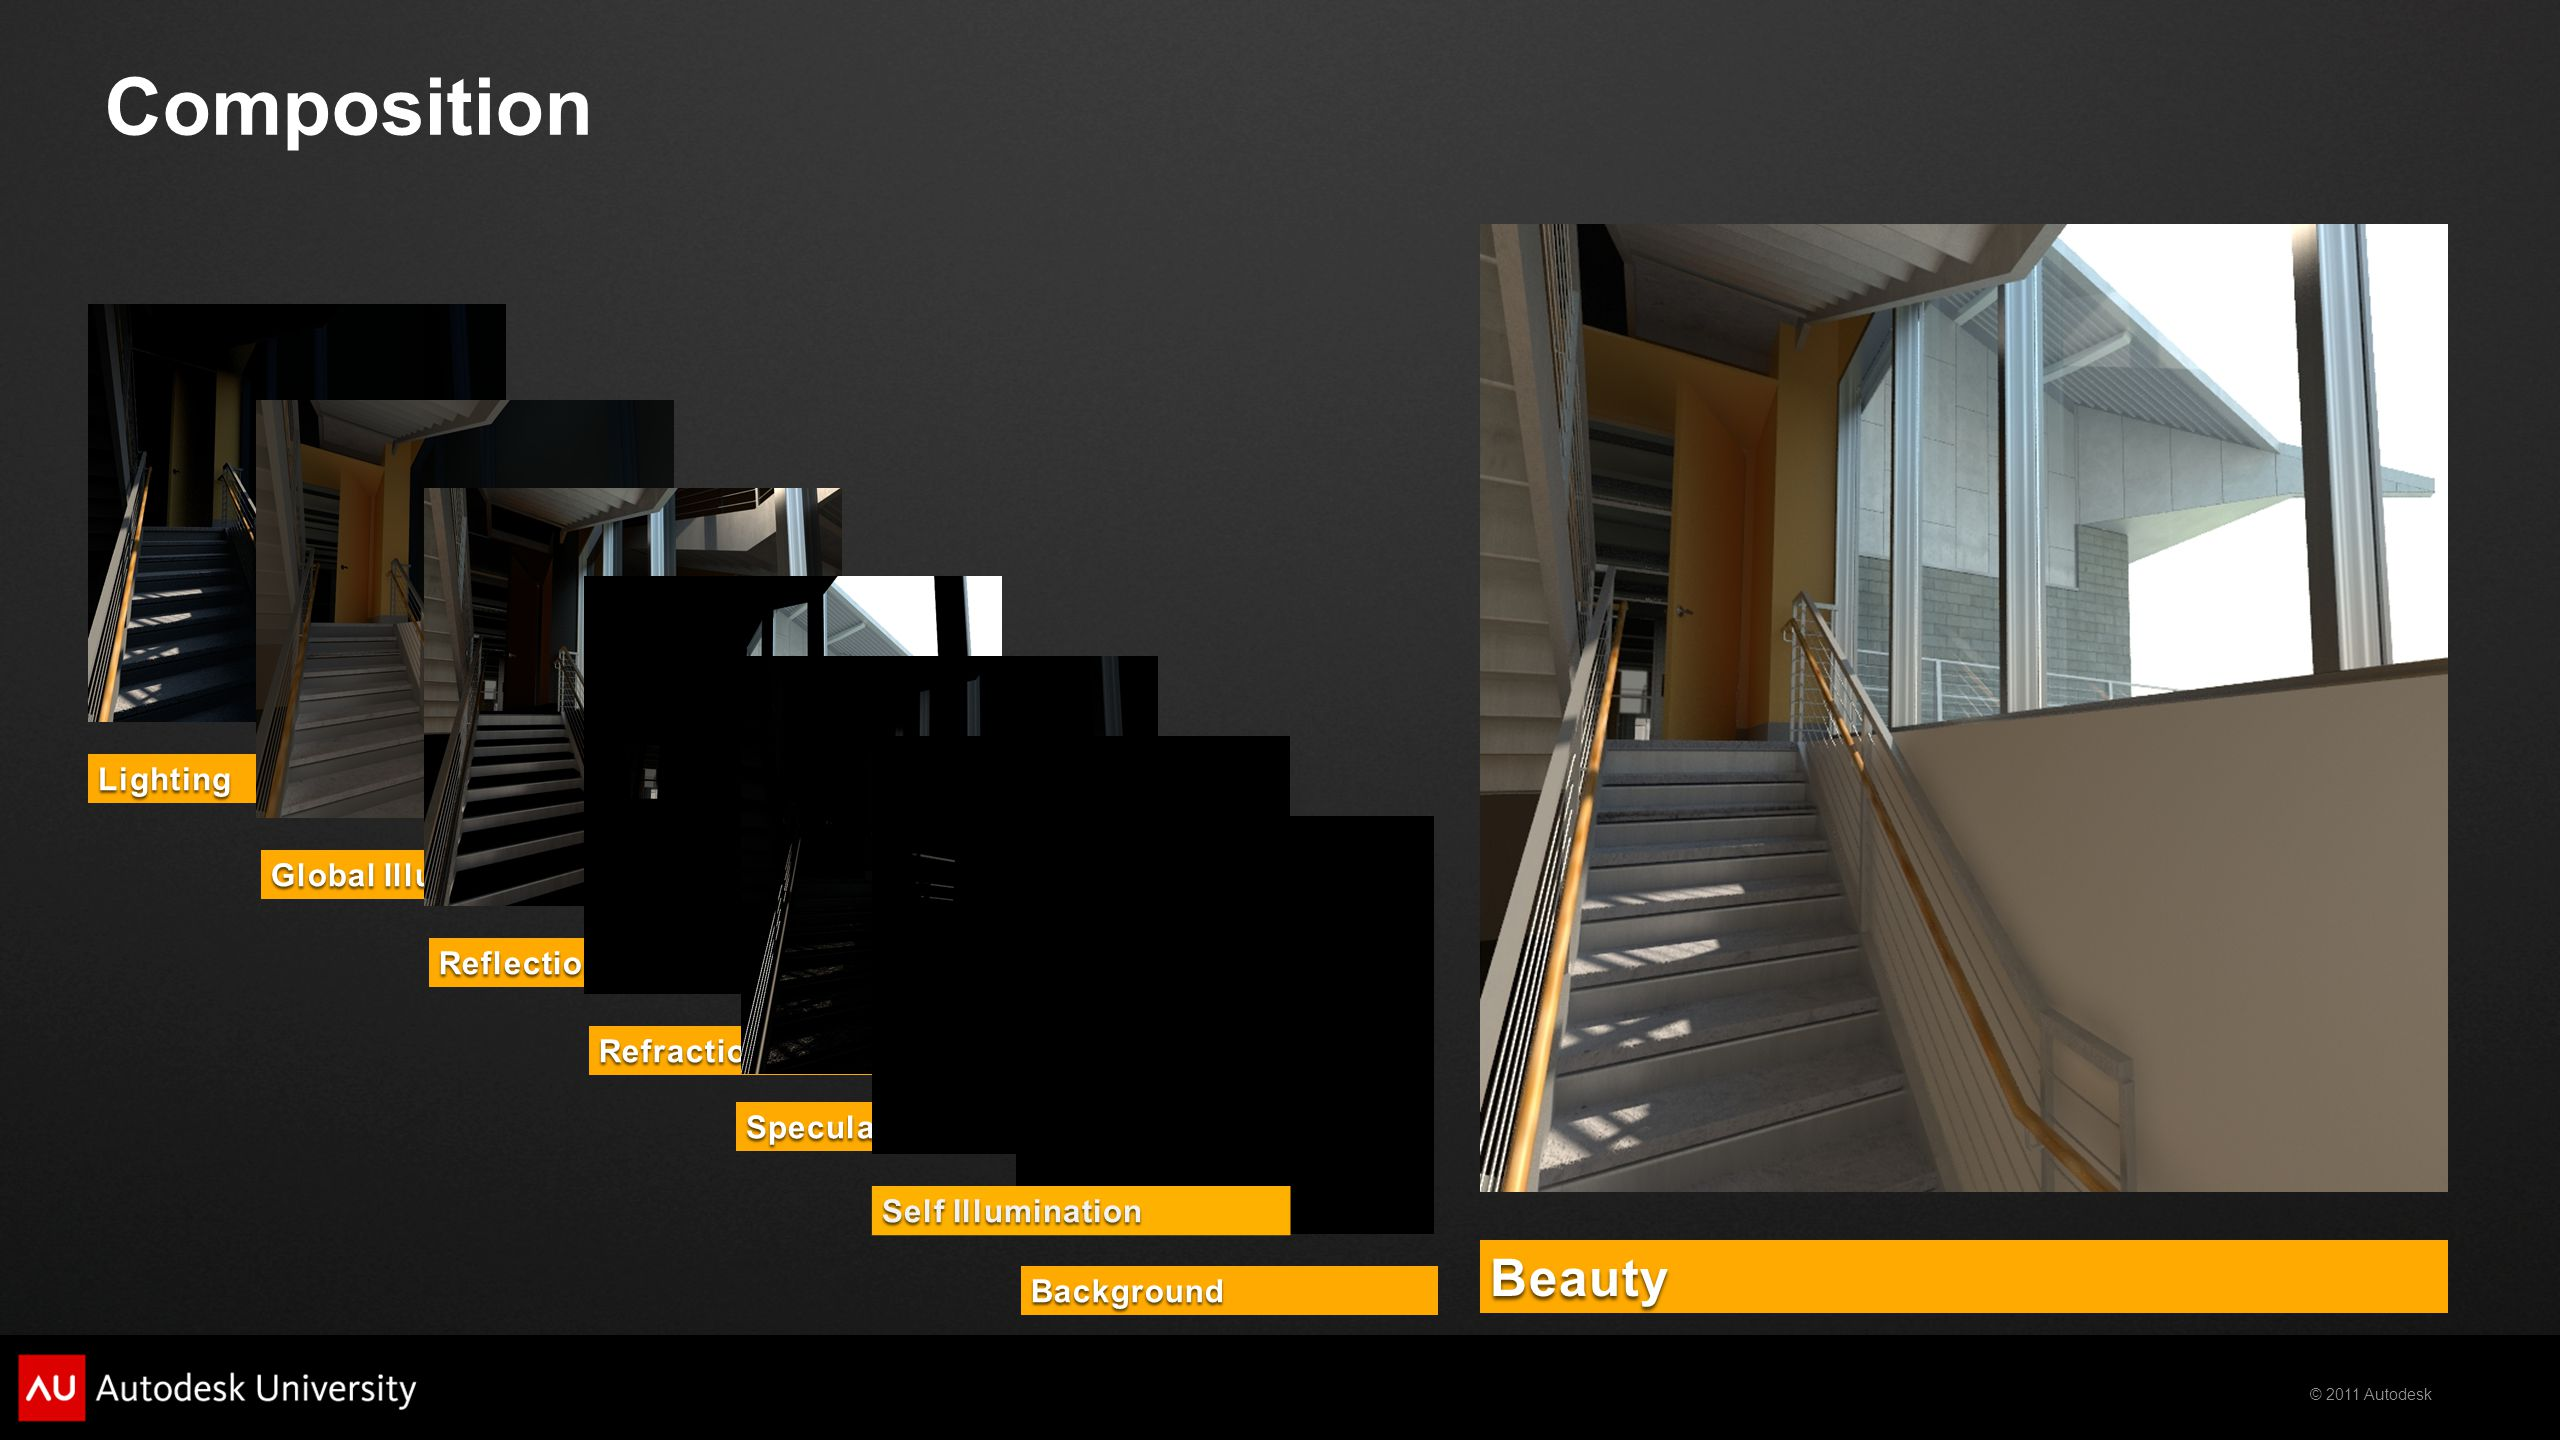 © 2011 Autodesk Background CompositionLighting Global Illumination Reflection Refraction Specular Self Illumination Beauty